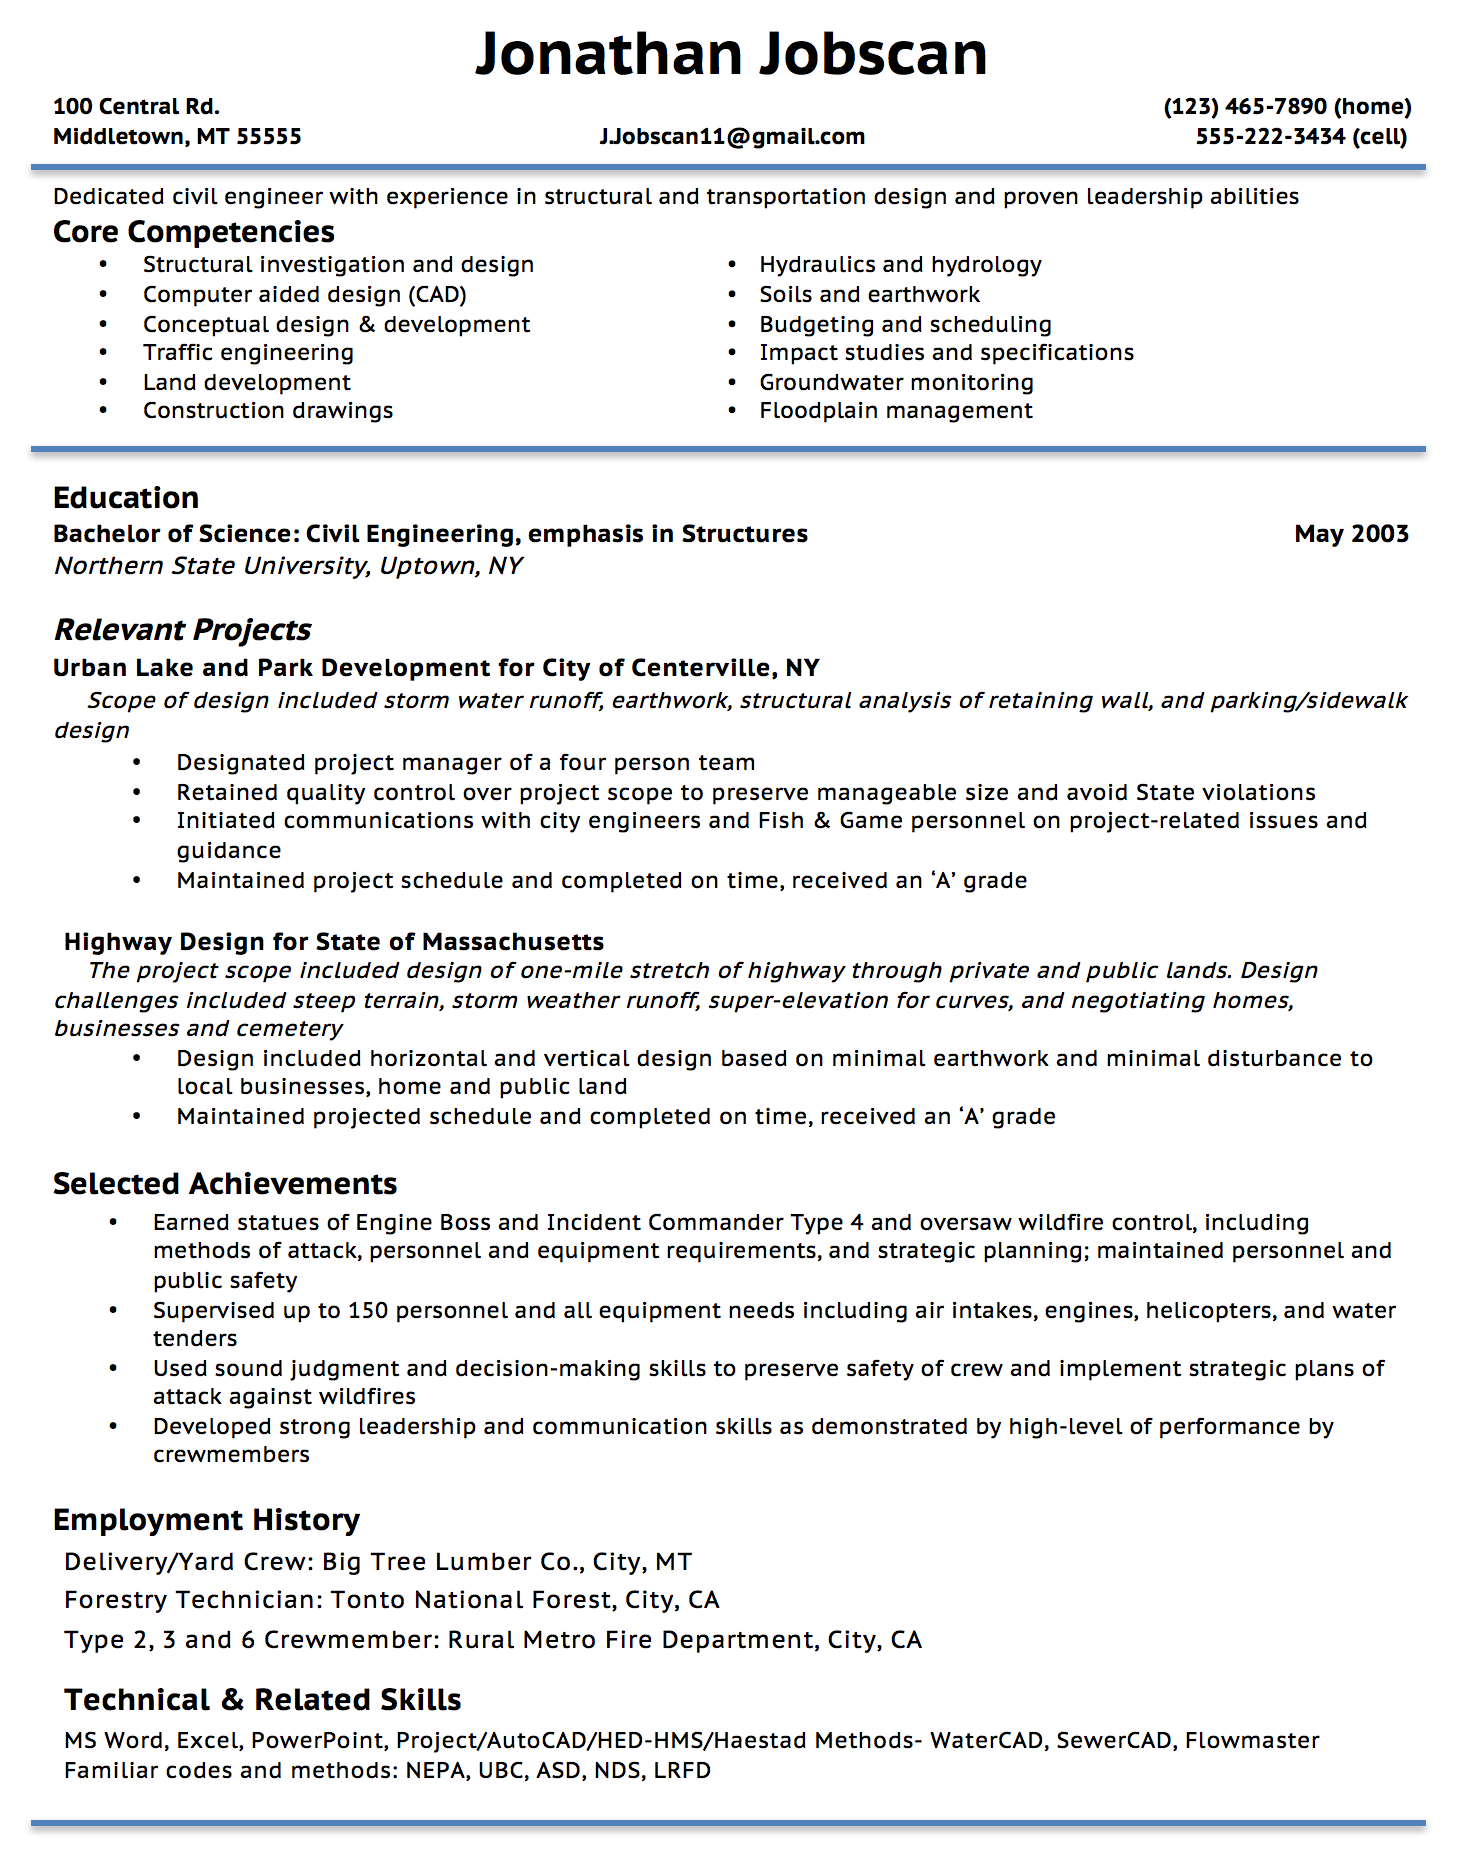 Opposenewapstandardsus  Terrific Resume Writing Guide  Jobscan With Great Example Of A Functional Resume Format With Beautiful Sample Skills For Resume Also Purchasing Resume In Addition Resume Examples  And Basic Resume Objective As Well As Systems Engineer Resume Additionally Resume Templates Examples From Jobscanco With Opposenewapstandardsus  Great Resume Writing Guide  Jobscan With Beautiful Example Of A Functional Resume Format And Terrific Sample Skills For Resume Also Purchasing Resume In Addition Resume Examples  From Jobscanco